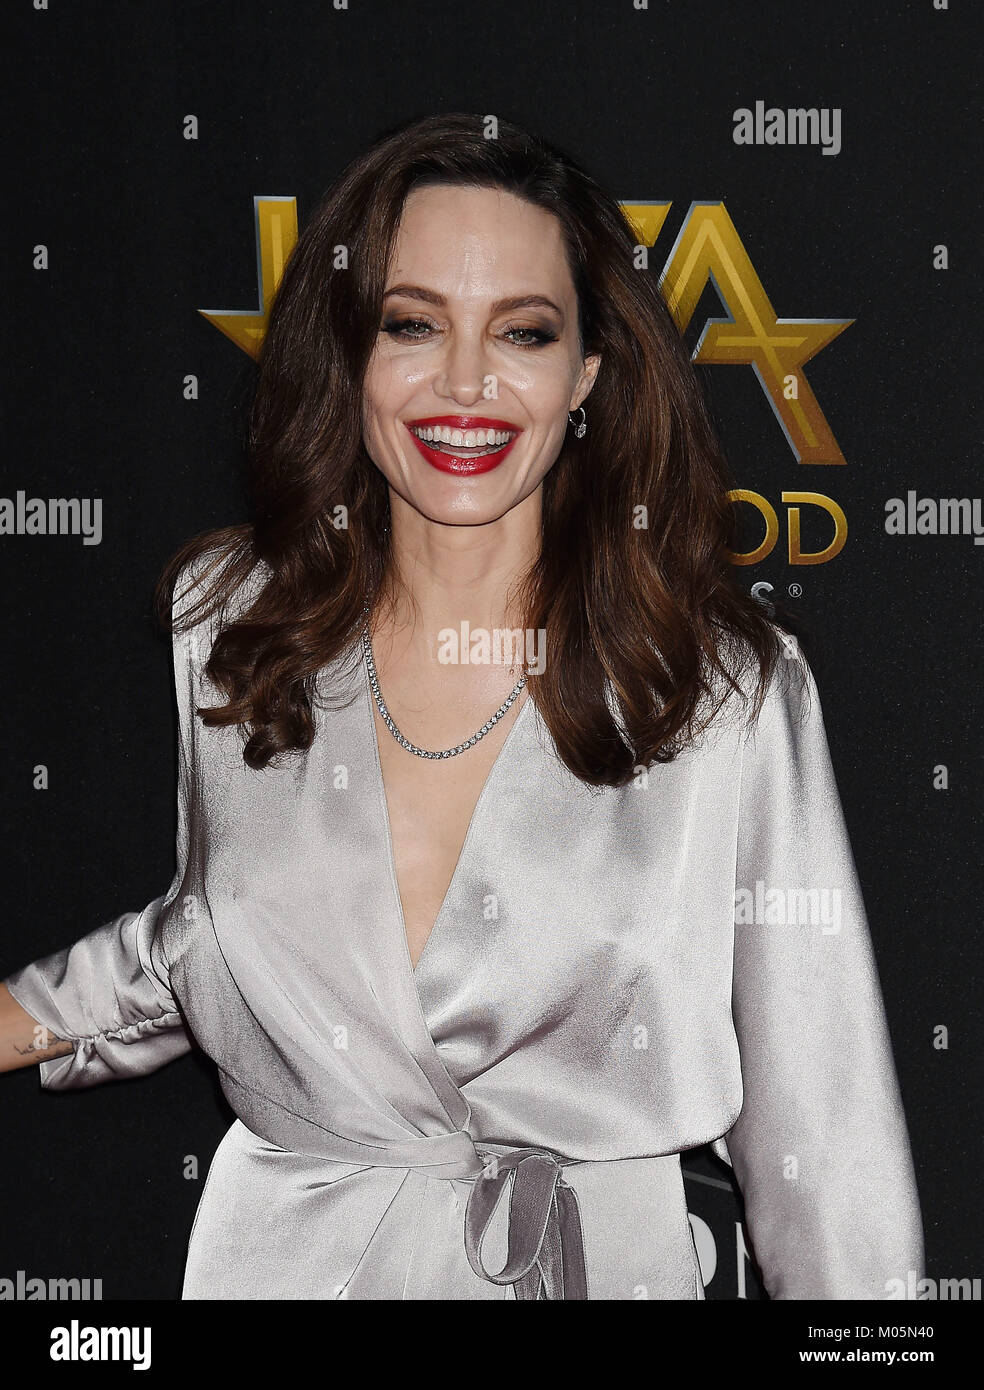 Angelina Jolie Us Film Actress Attends The 21st Annual